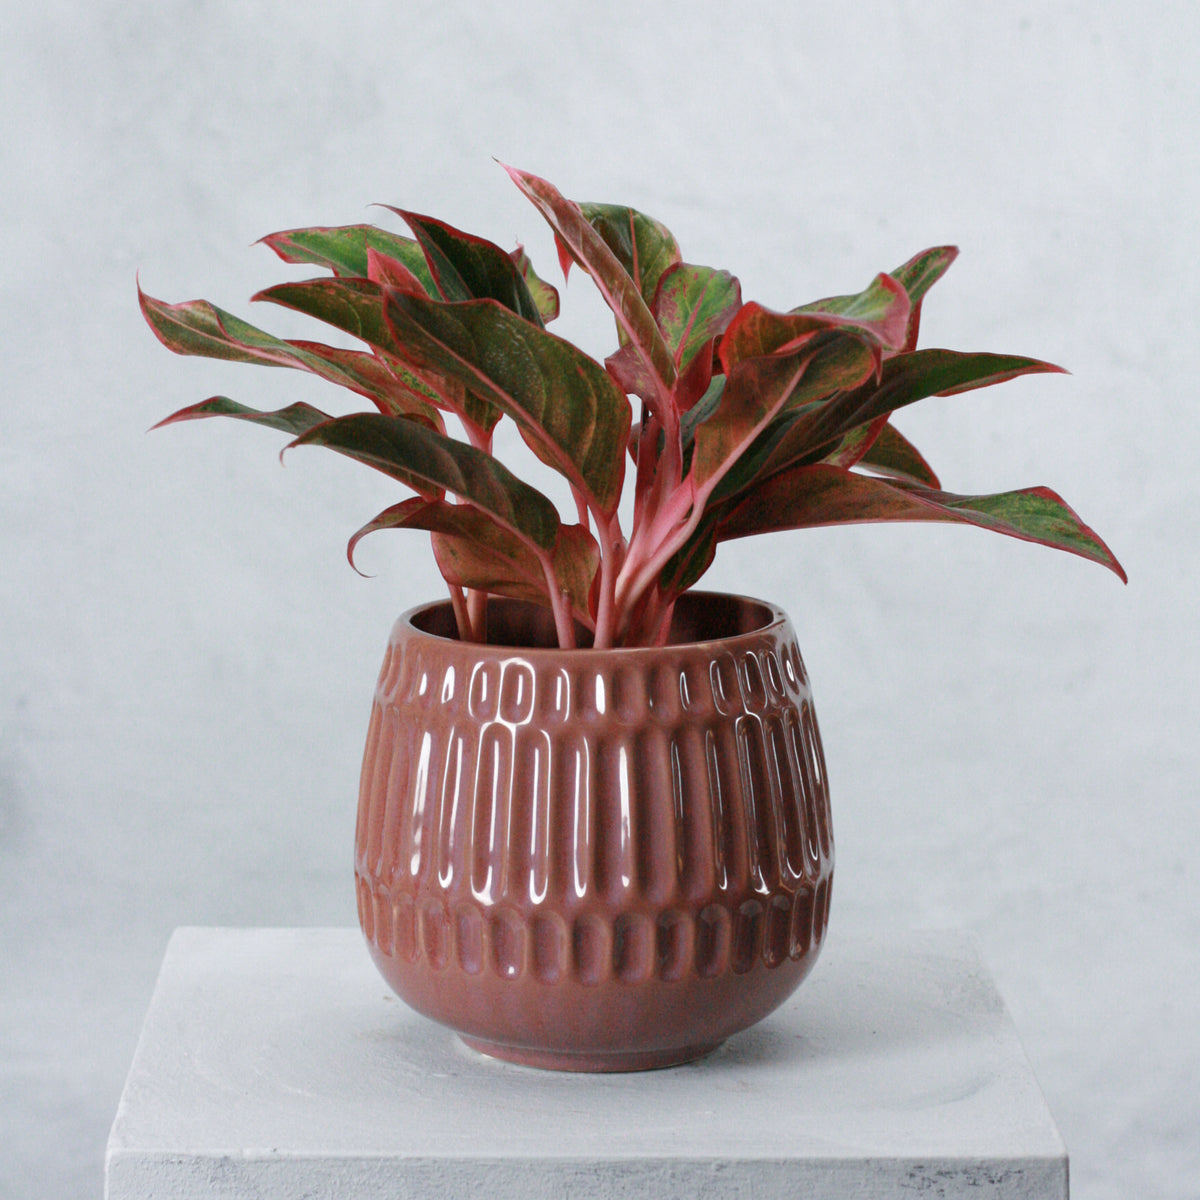 Aglaonema crete (Chinese Evergreen)